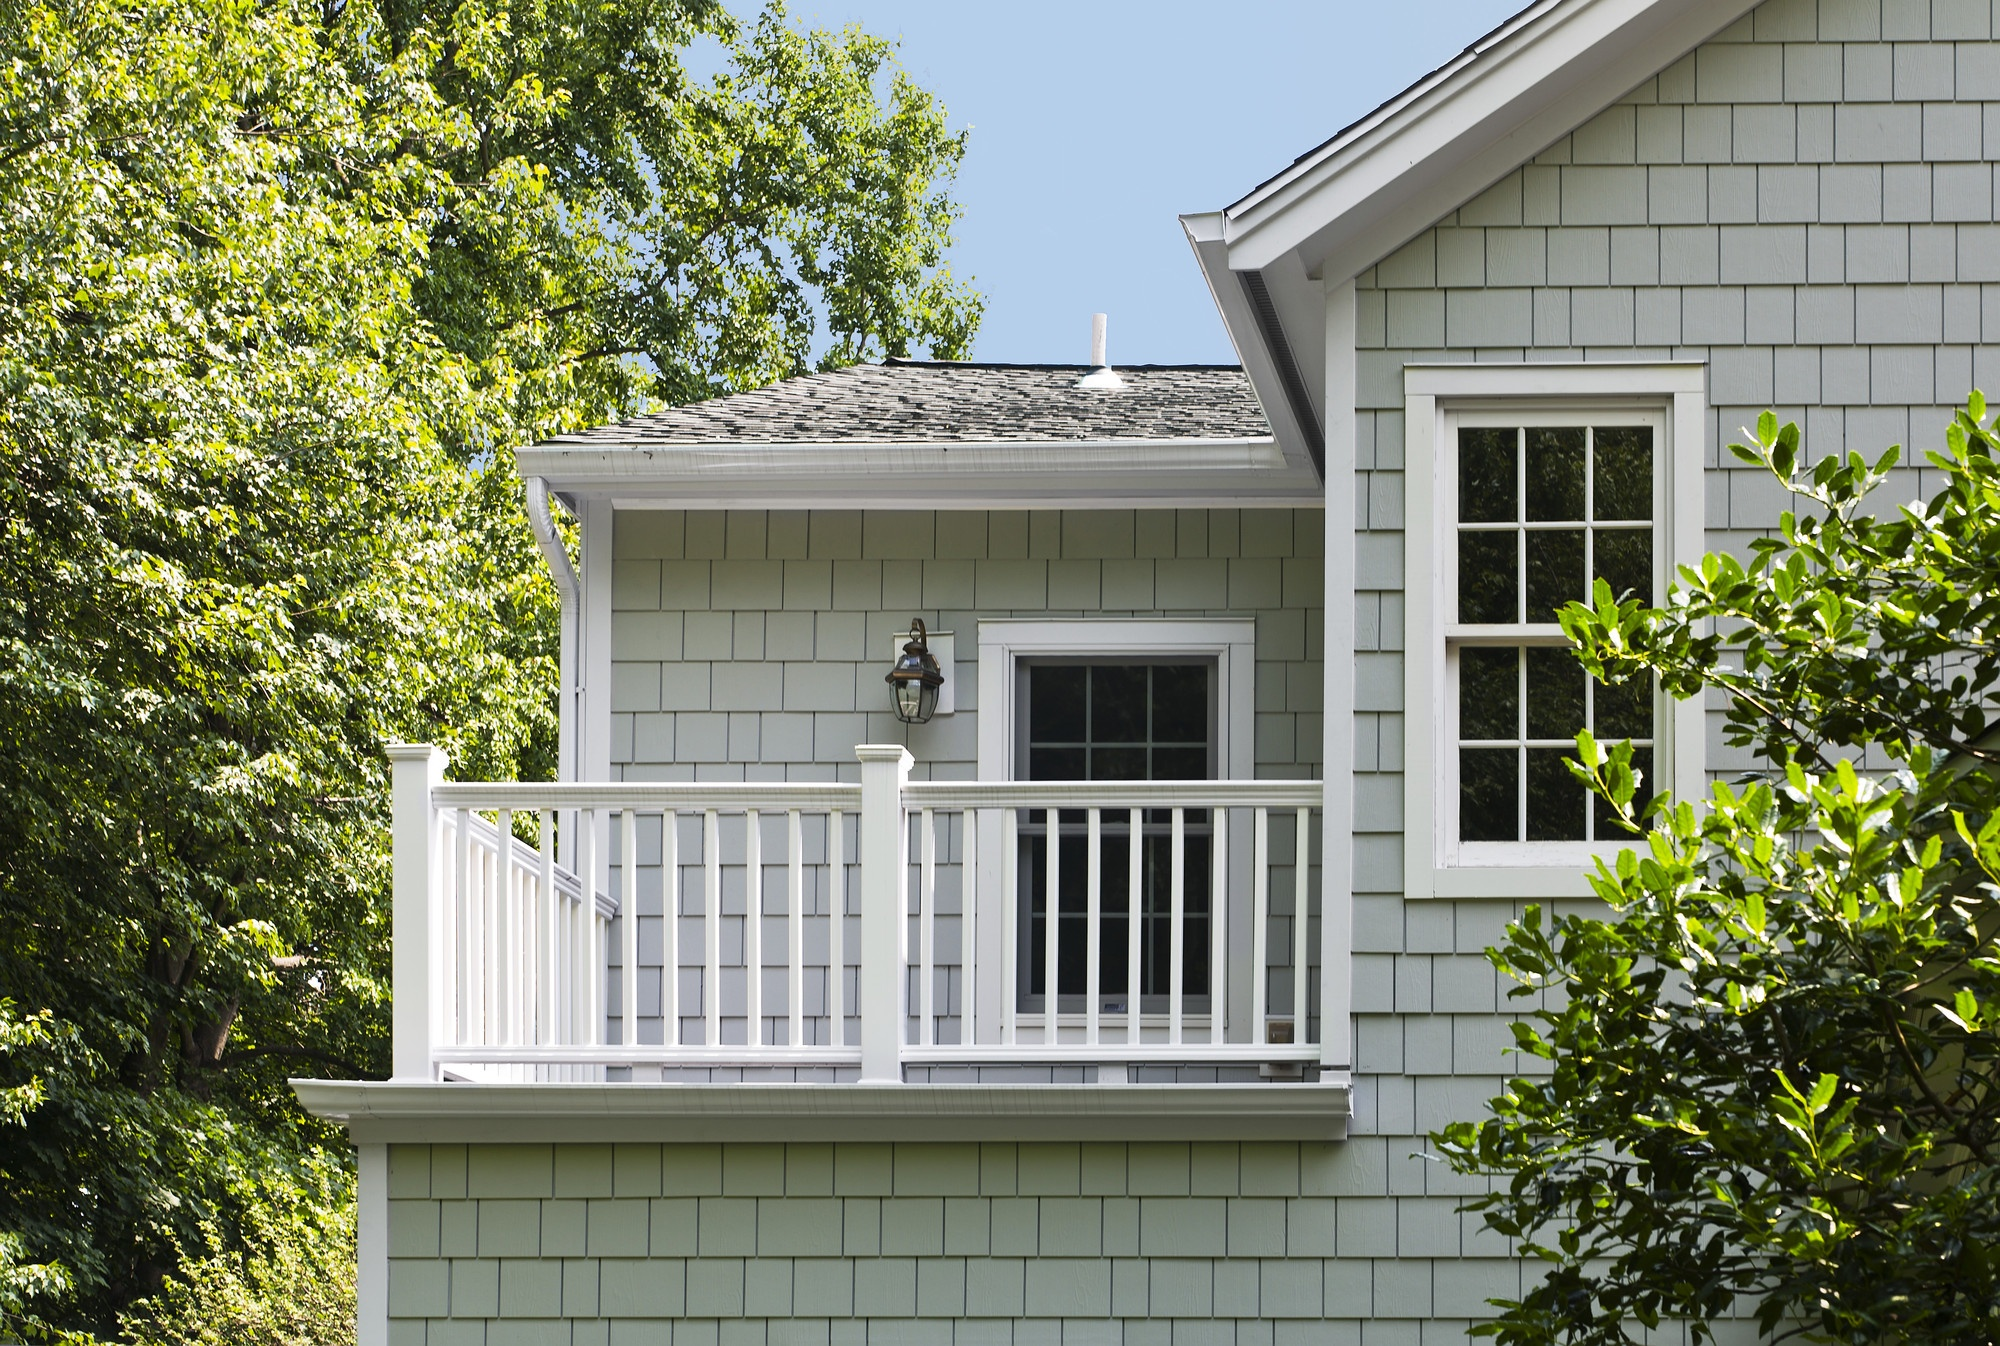 Choosing A Reputable Siding Company Is Very Important